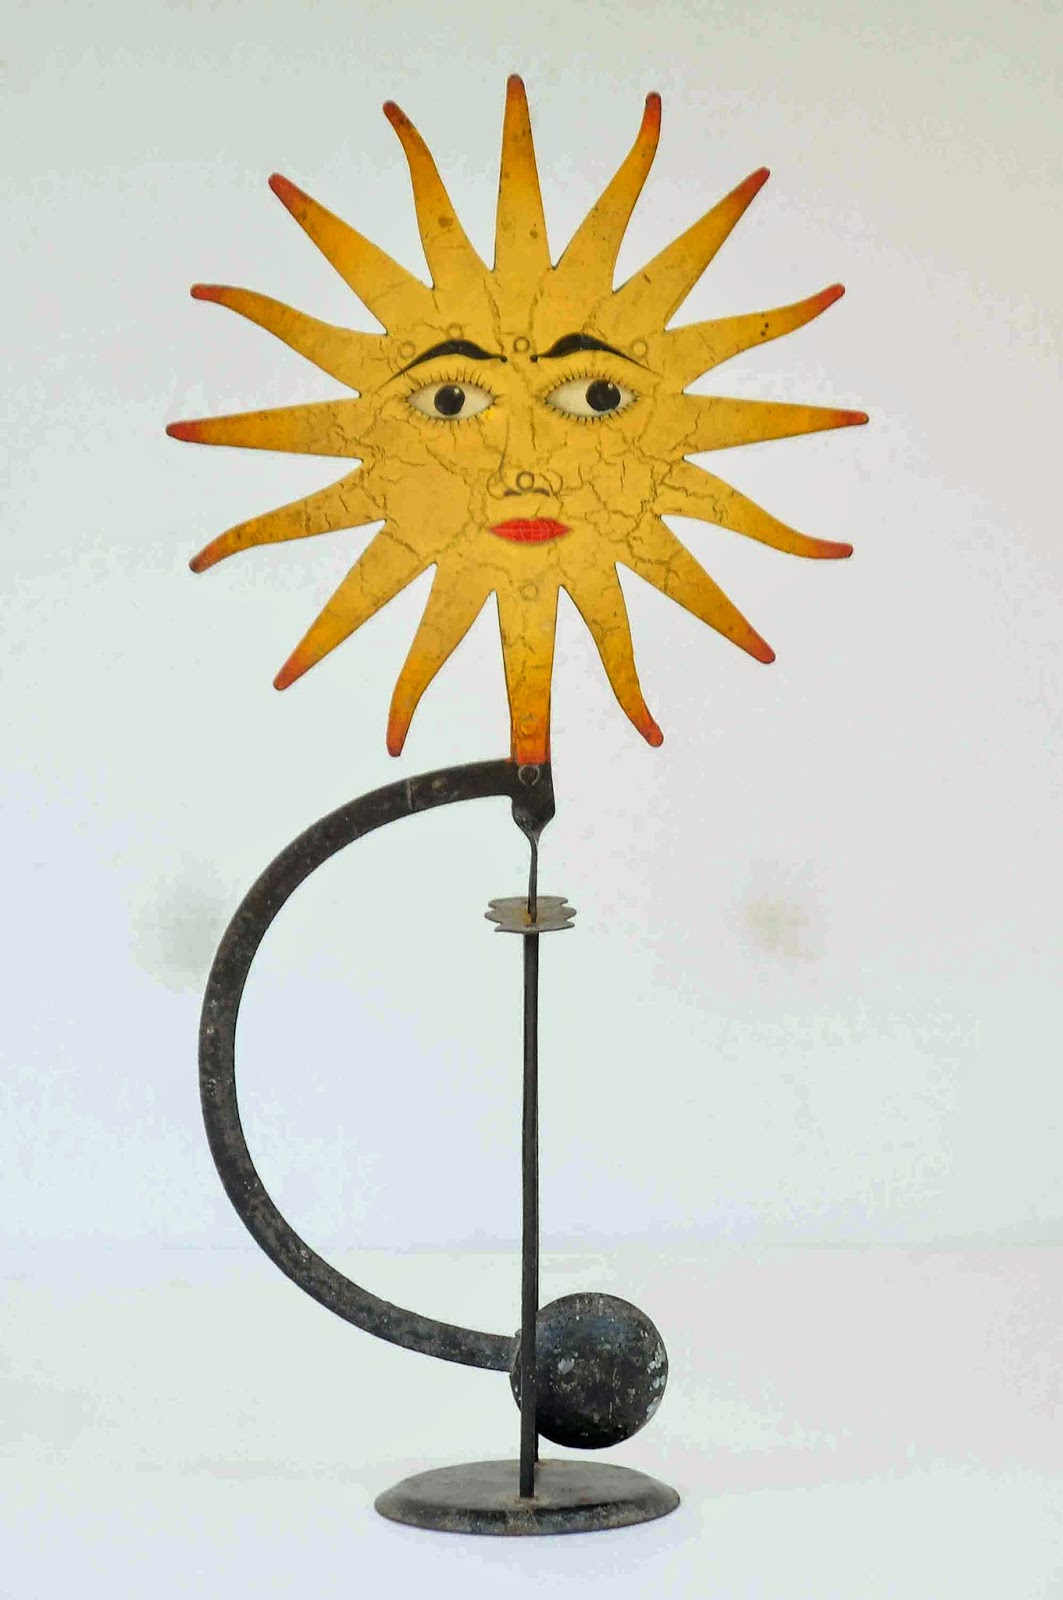 Old Vintage Gallery Antique Sun Balancing Toy